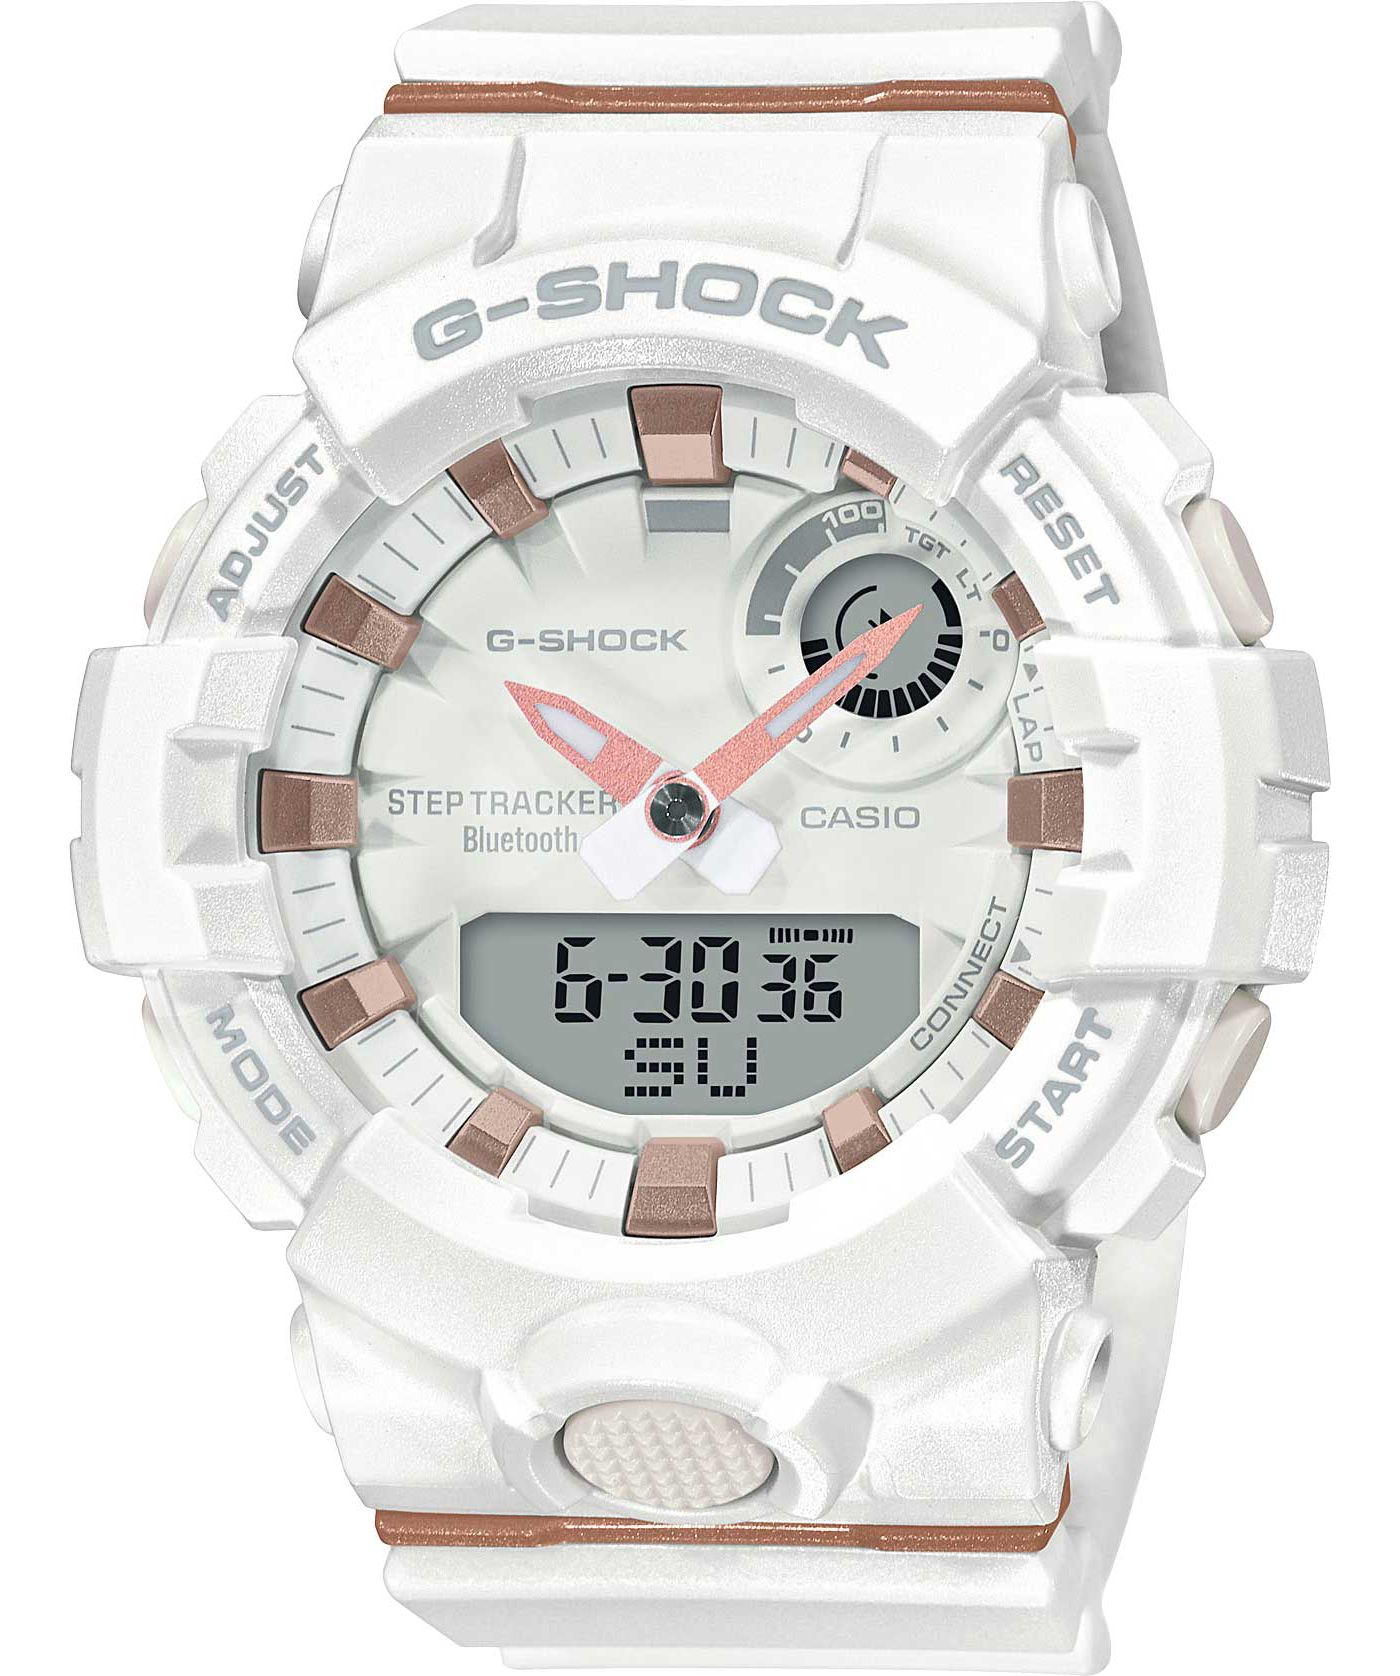 Casio G-Shock Slim Connected Fitness Tracker Watch